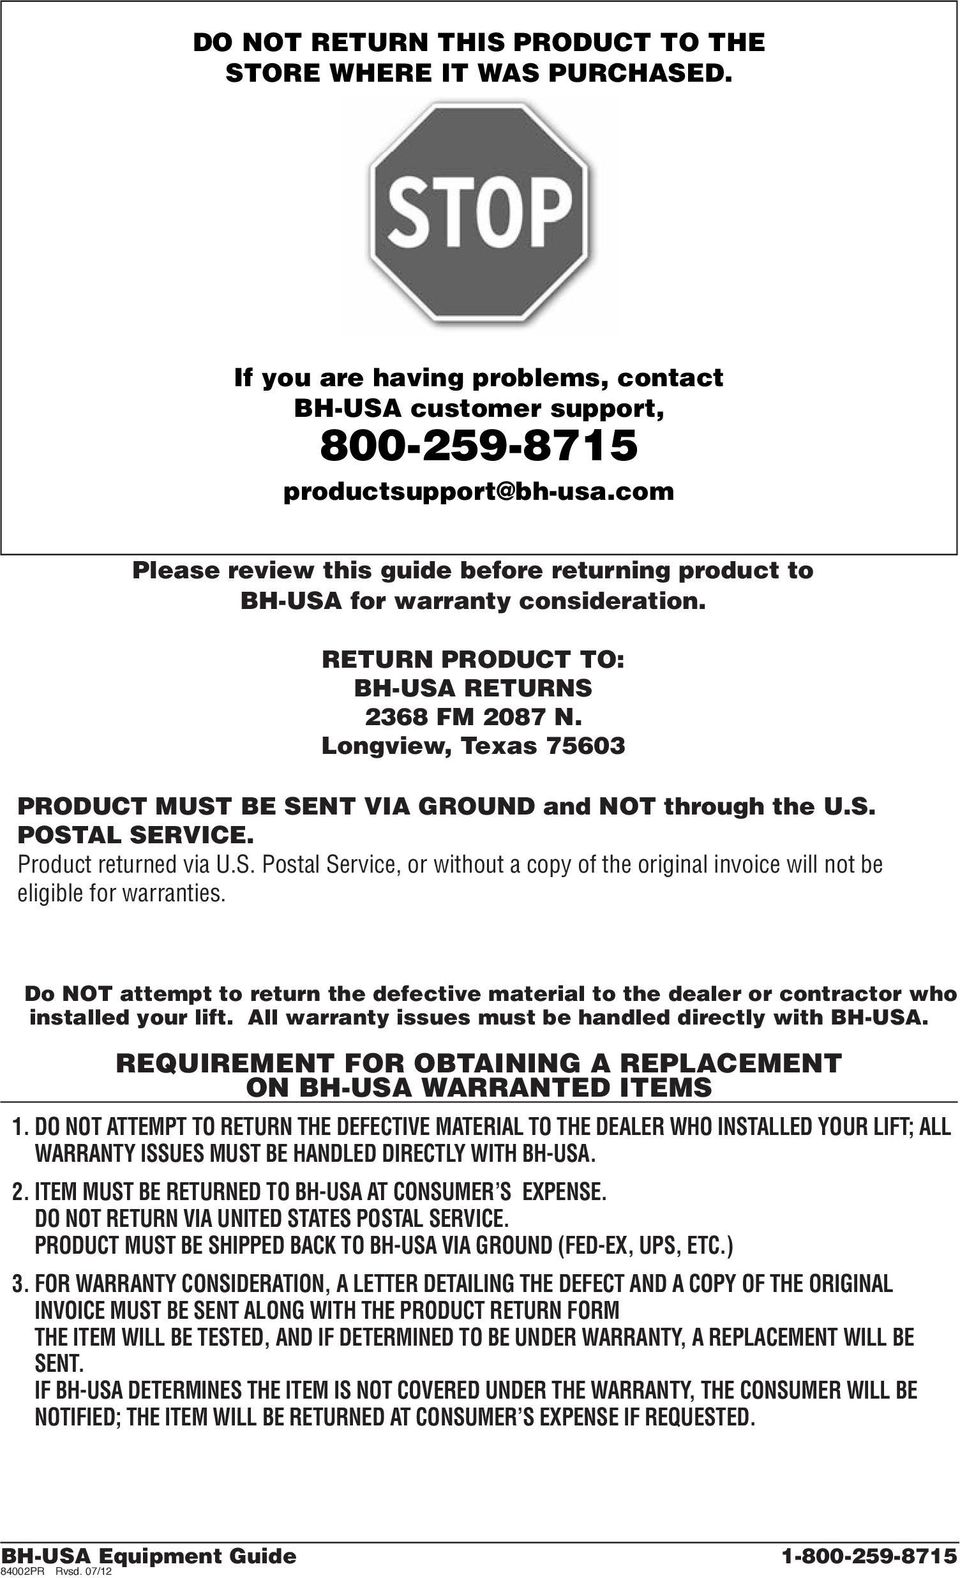 Equipment Guide Rvsd This Is Intended For The End User Gear Salzer Drum Switches Wiring Diagram Longview Texas 75603 Product Must Be Sent Via Ground And Not Through Us Postal